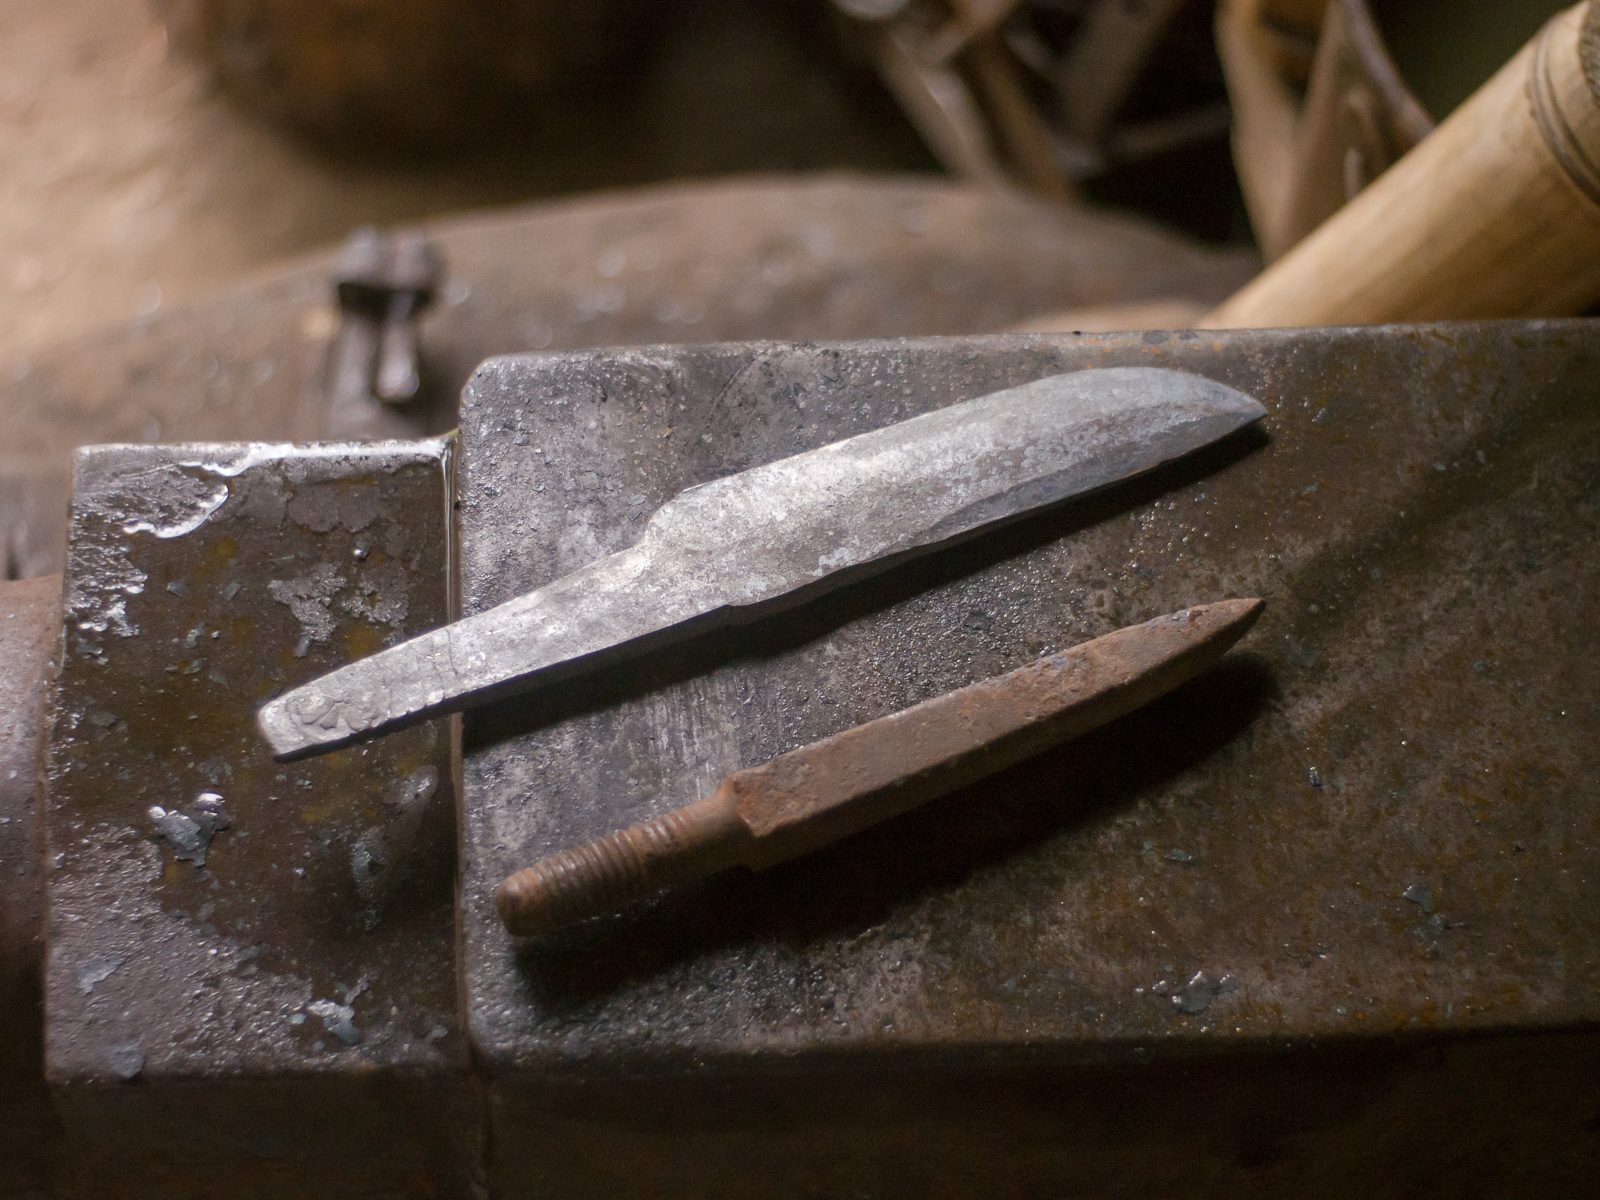 Island Blacksmith: Charcoal forged knives from reclaimed farm tools.